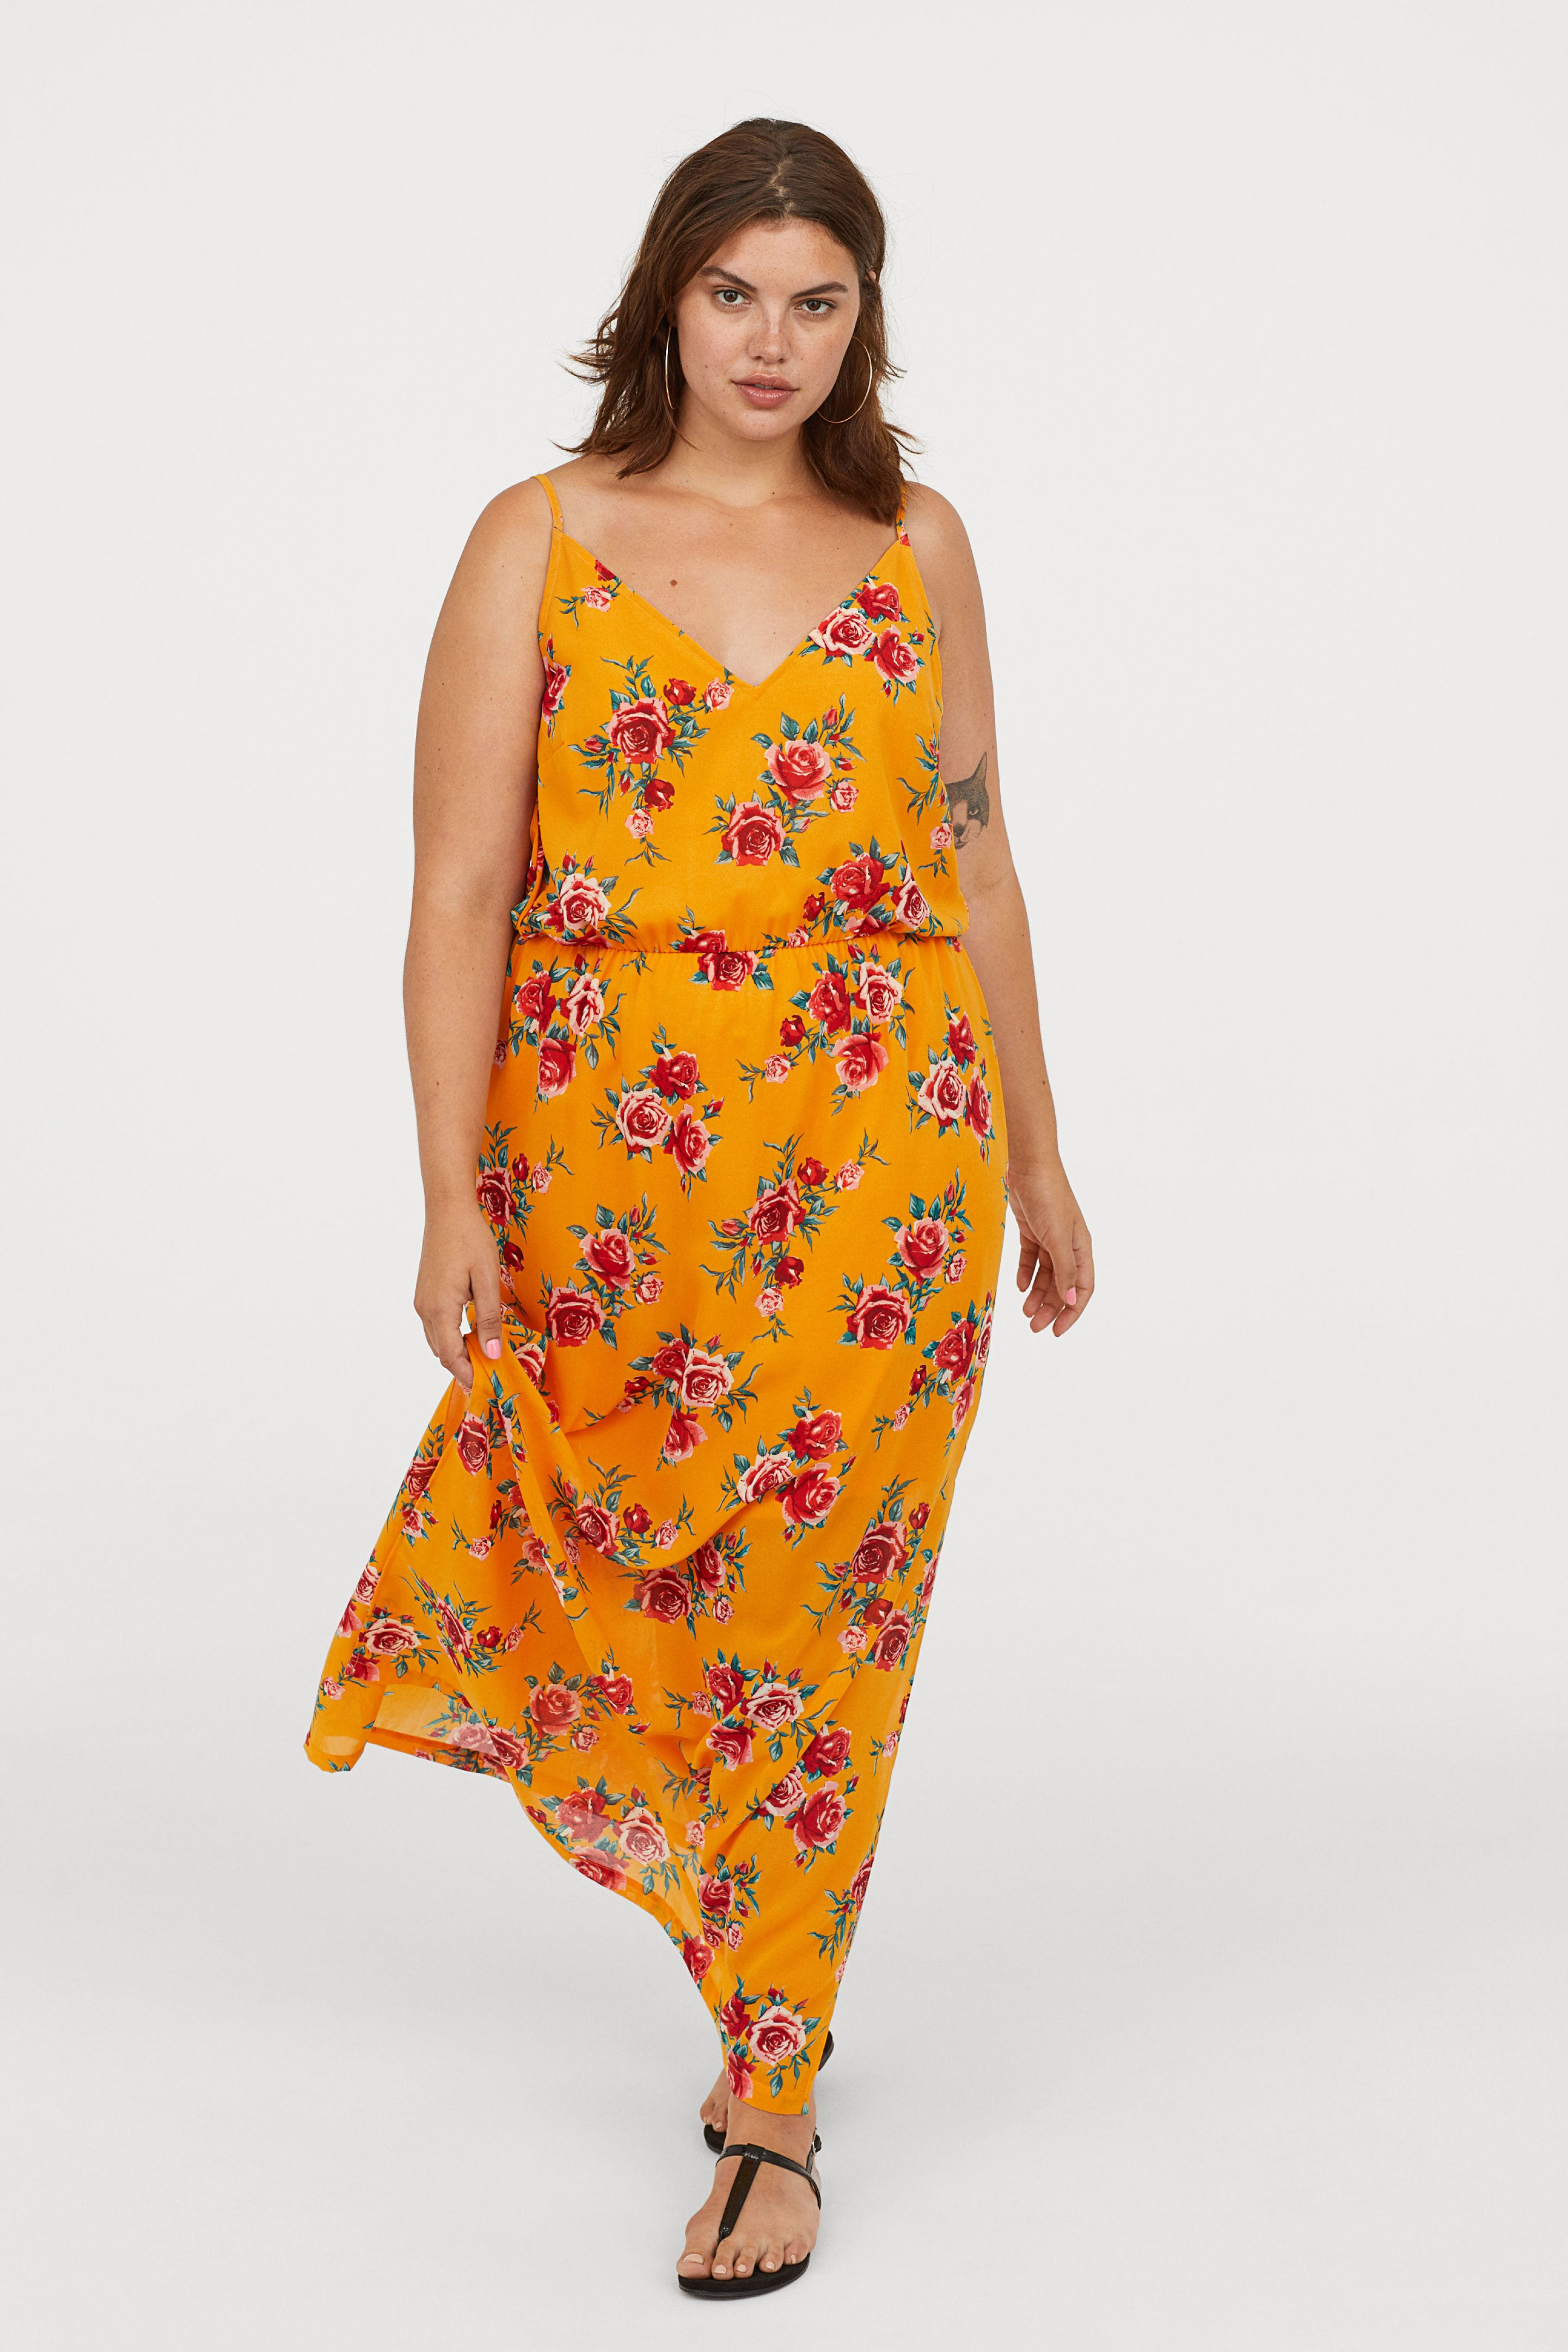 02686a8cc7226 Maxi Dress | H&M | Dresses, Yellow dress, Draped skirt